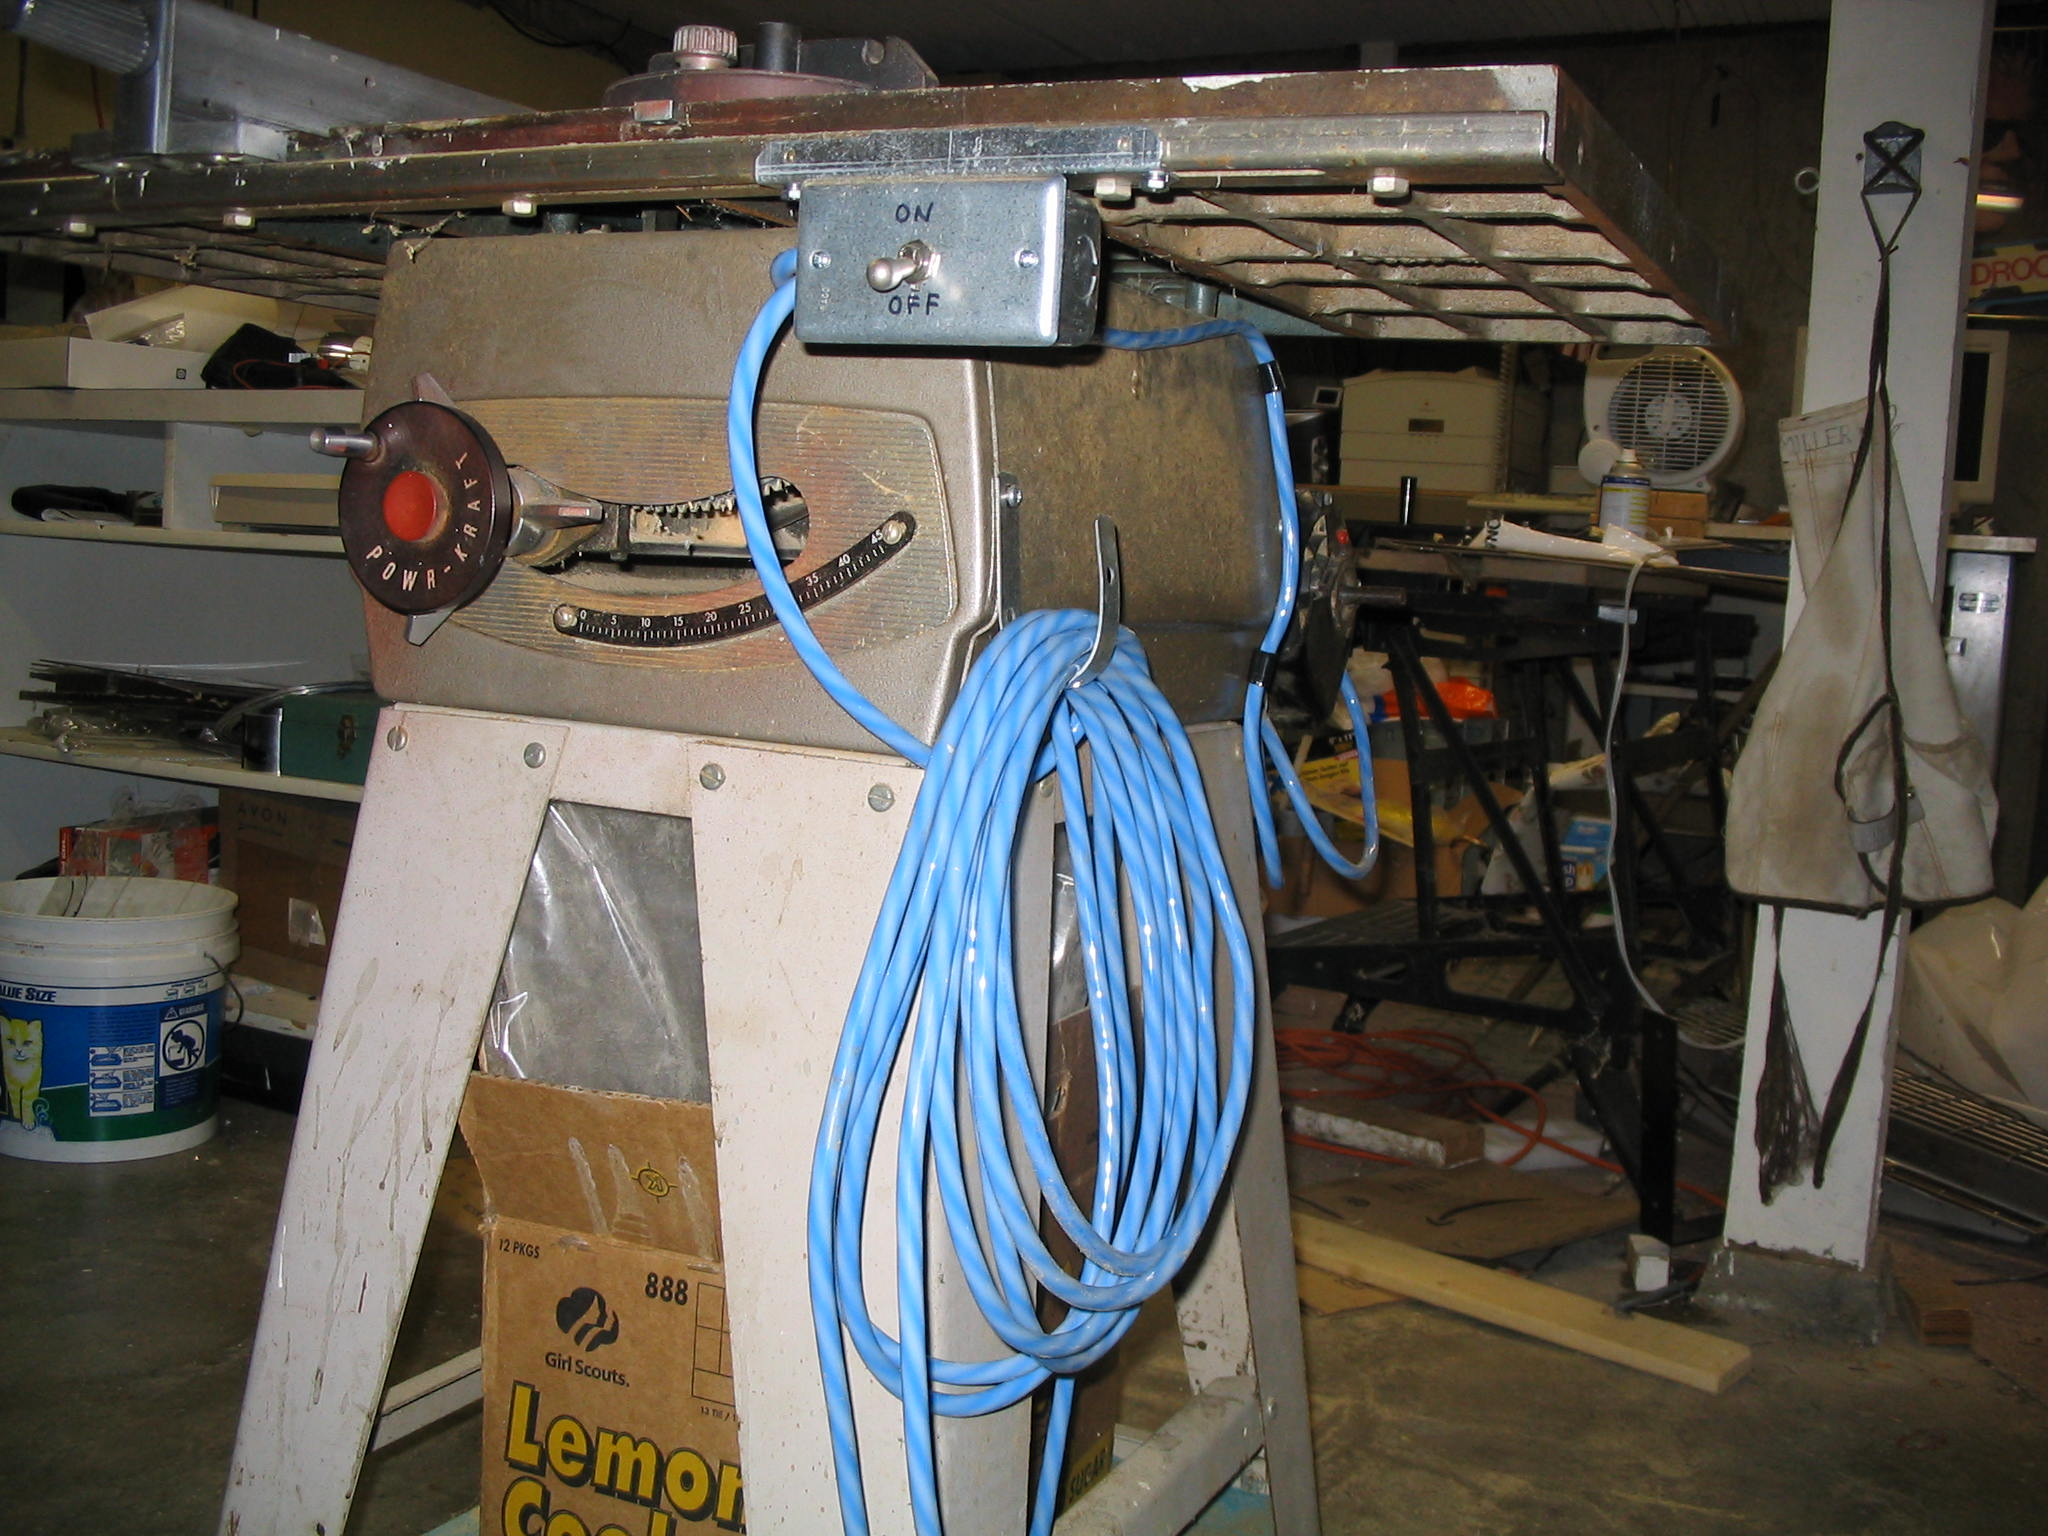 Tablesaw wiring repair bolis new switch and wiring greentooth Image collections